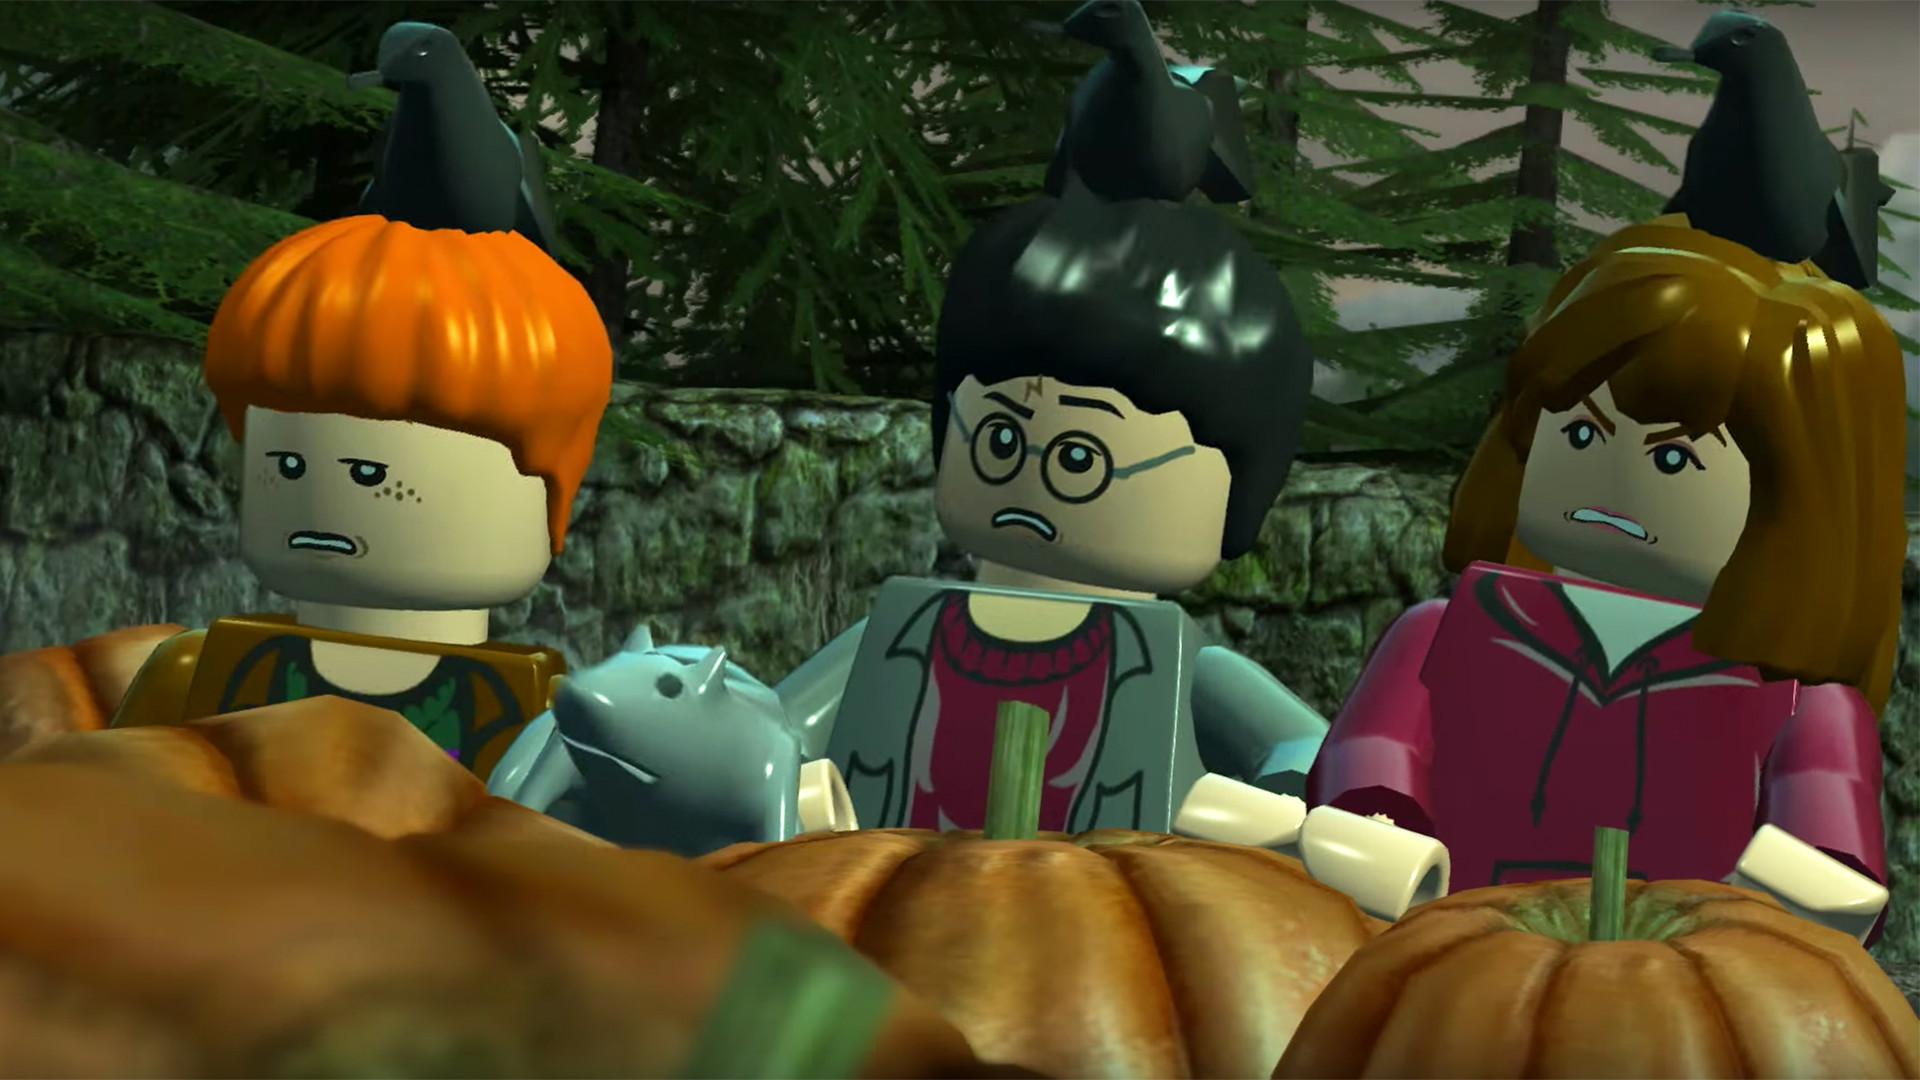 LEGO Harry Ron and Hermione in the pumpkin patch